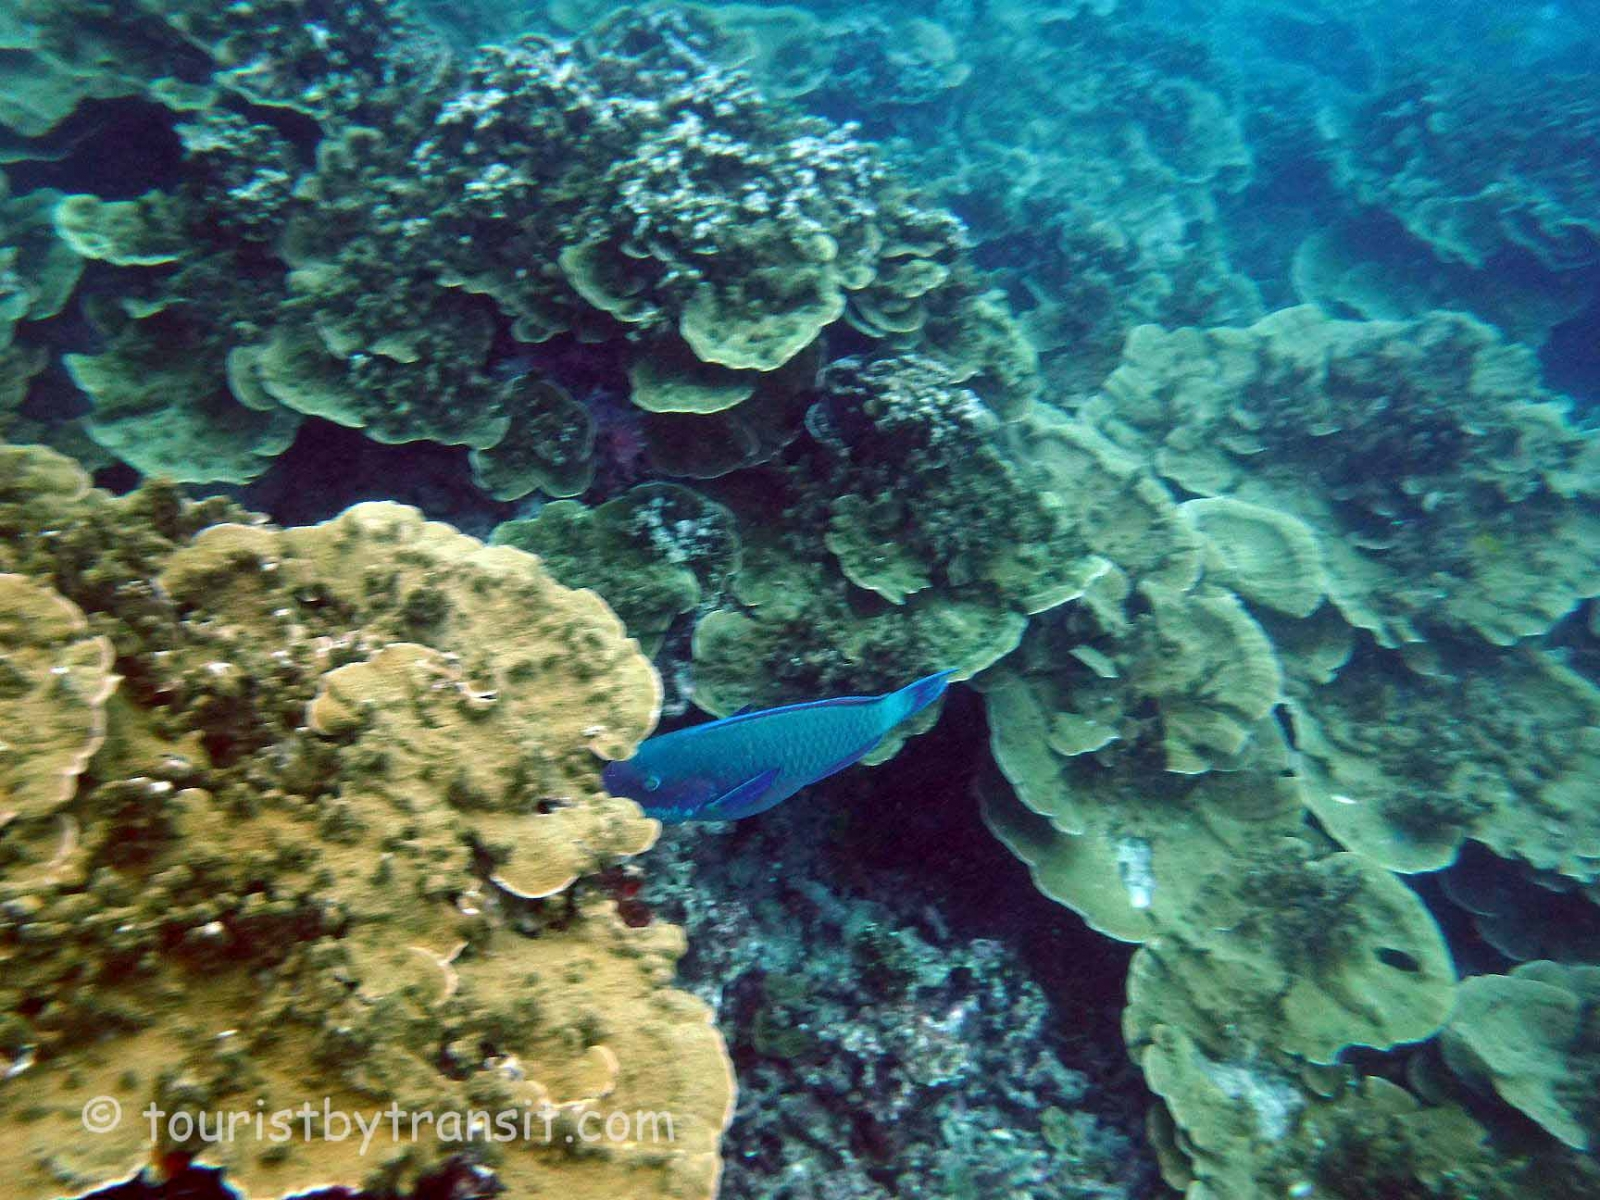 GreatBarrierReef-190322-13